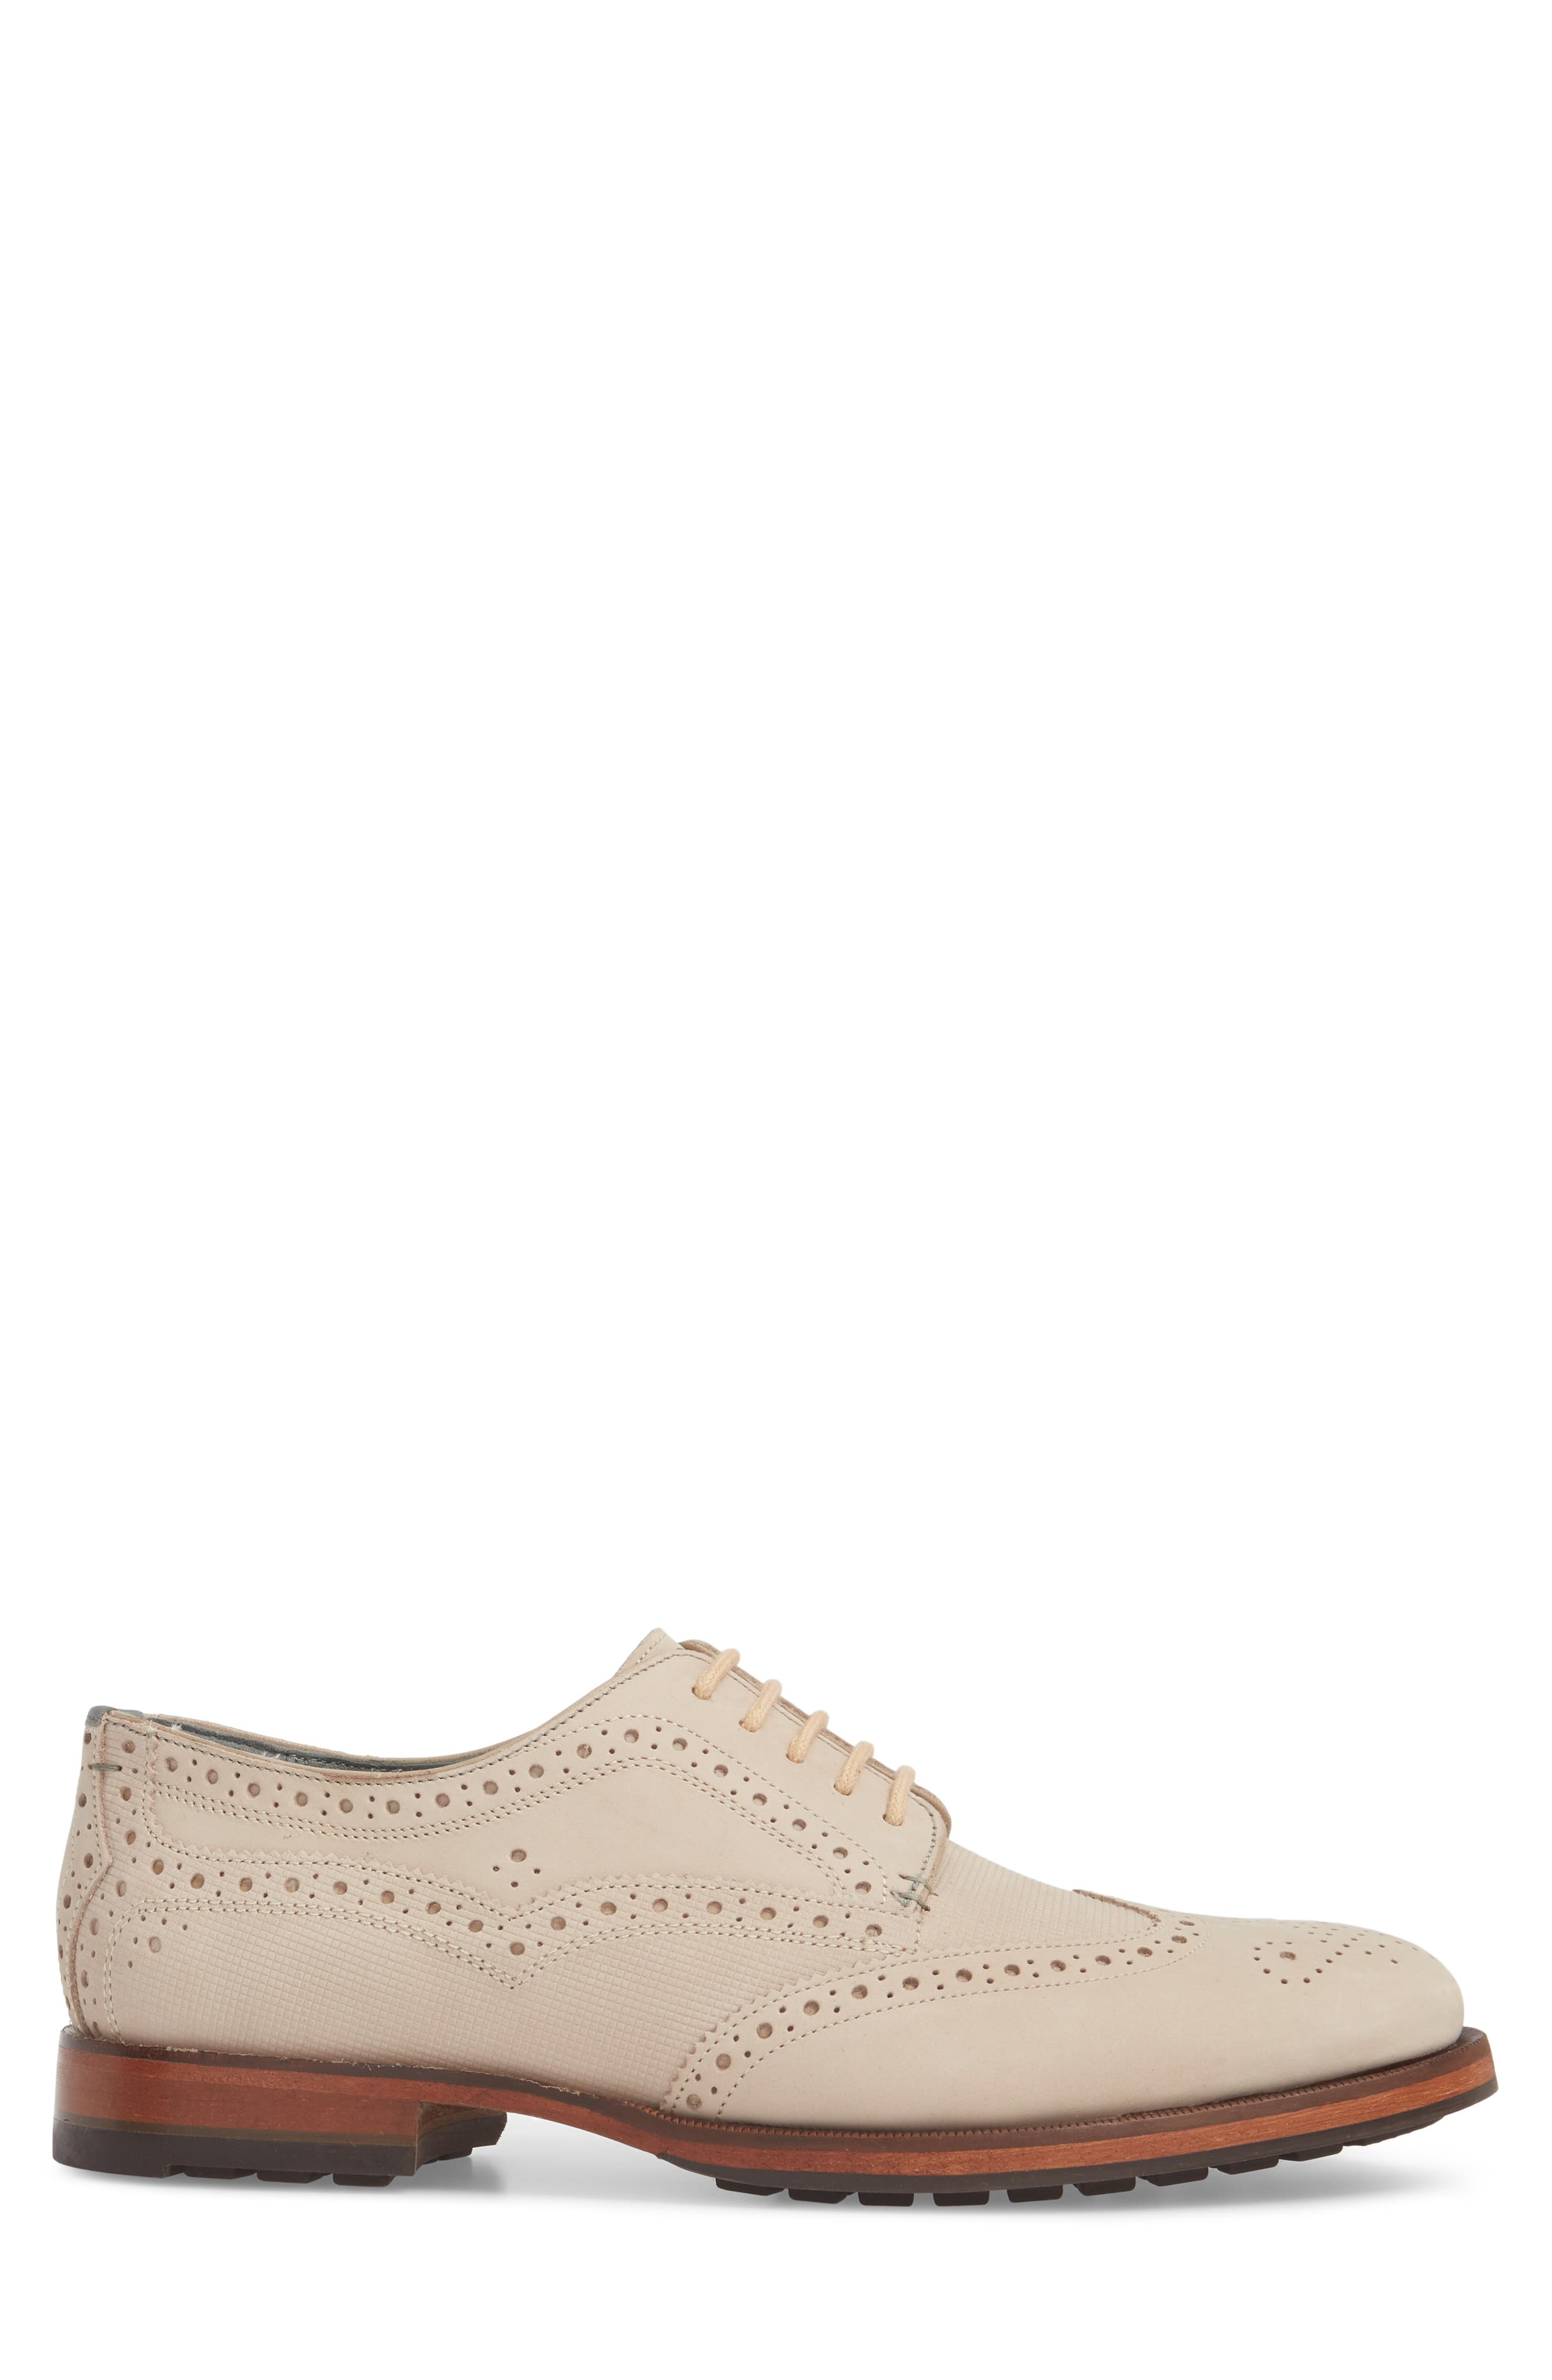 Senapen Wingtip Derby,                             Alternate thumbnail 3, color,                             LIGHT TAN SUEDE